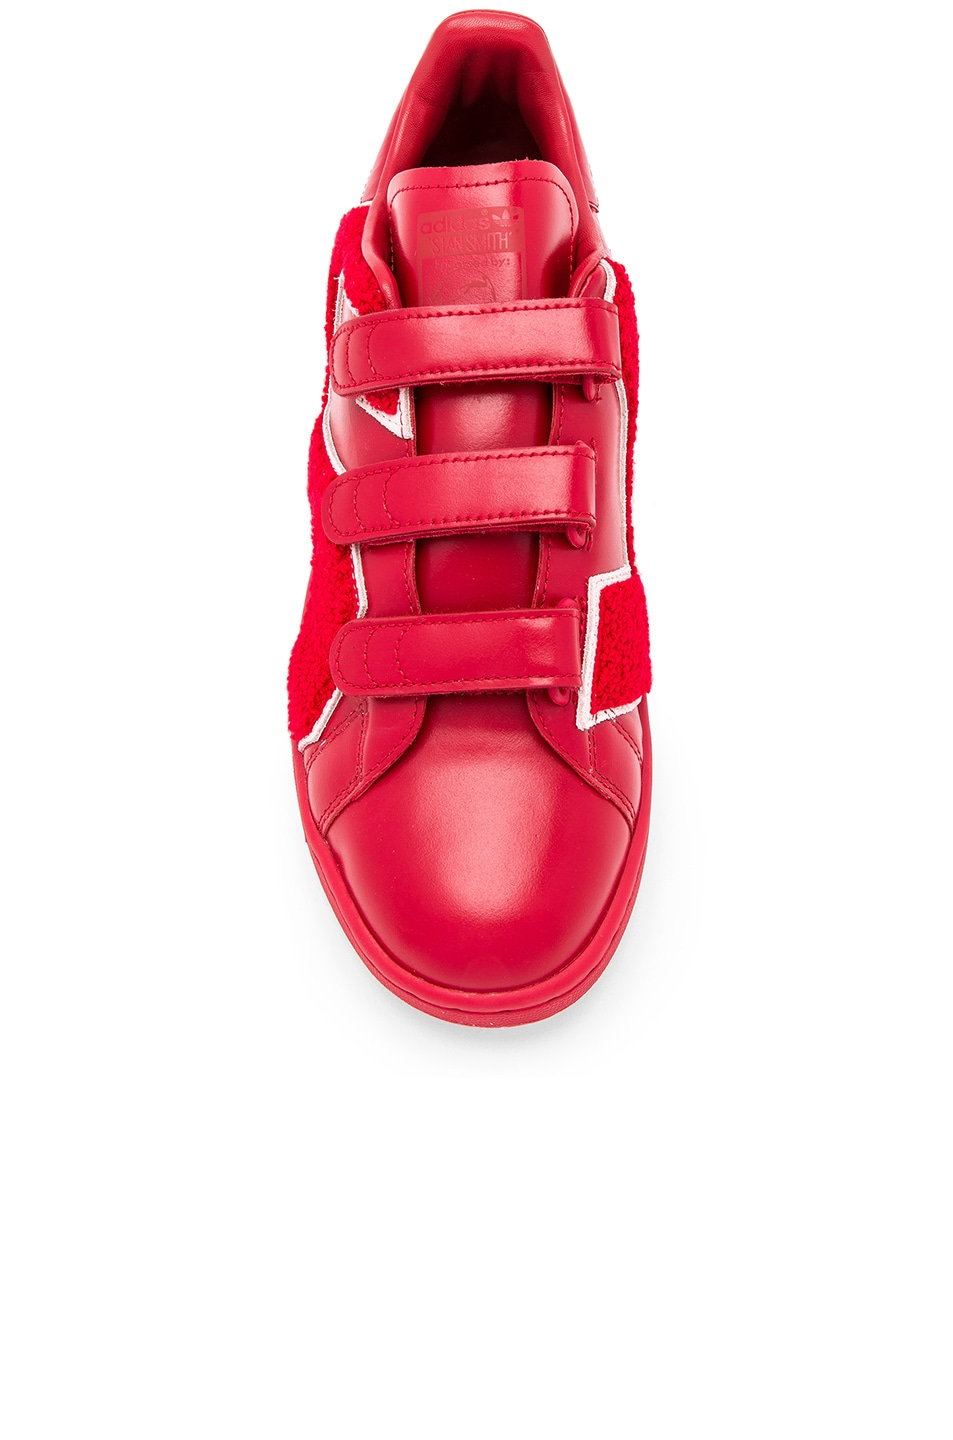 Image 4 of Raf Simons x Adidas RS Stan Smith Comfort Badge in Power Red 30e1af24c